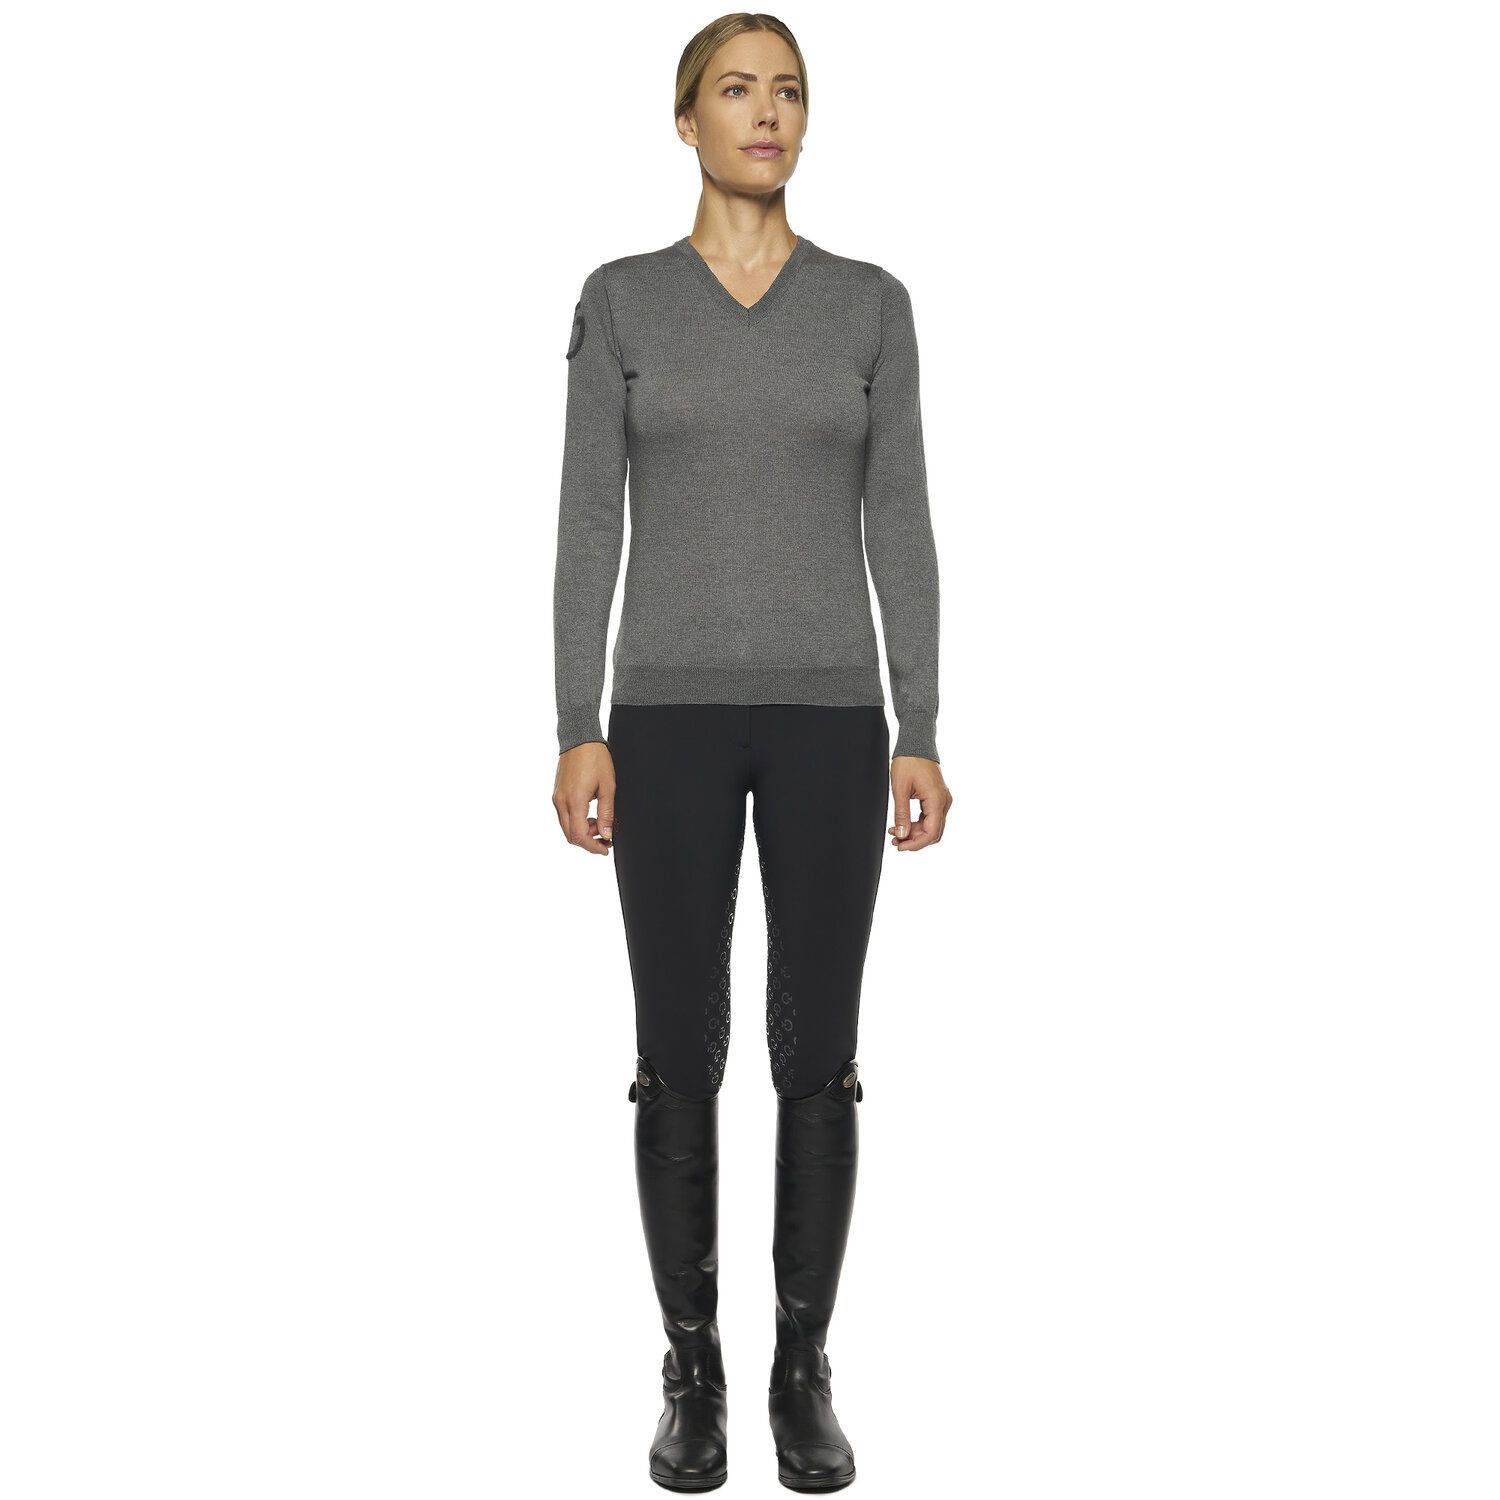 Women's Grey Sweater with V Neck